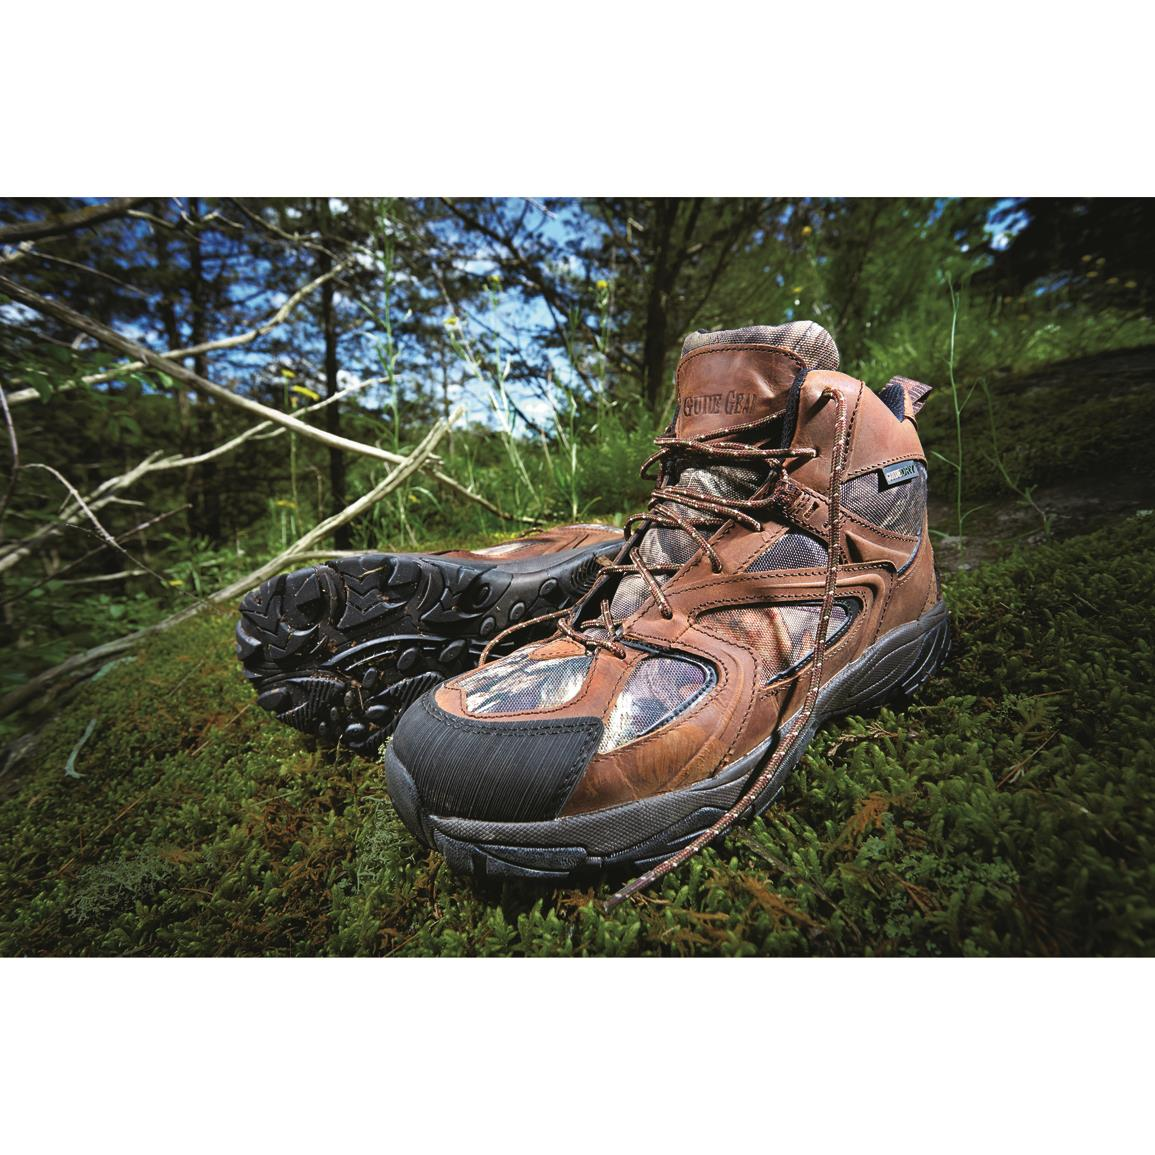 Aggressive sure-grip outsole provides topnotch traction over any terrain